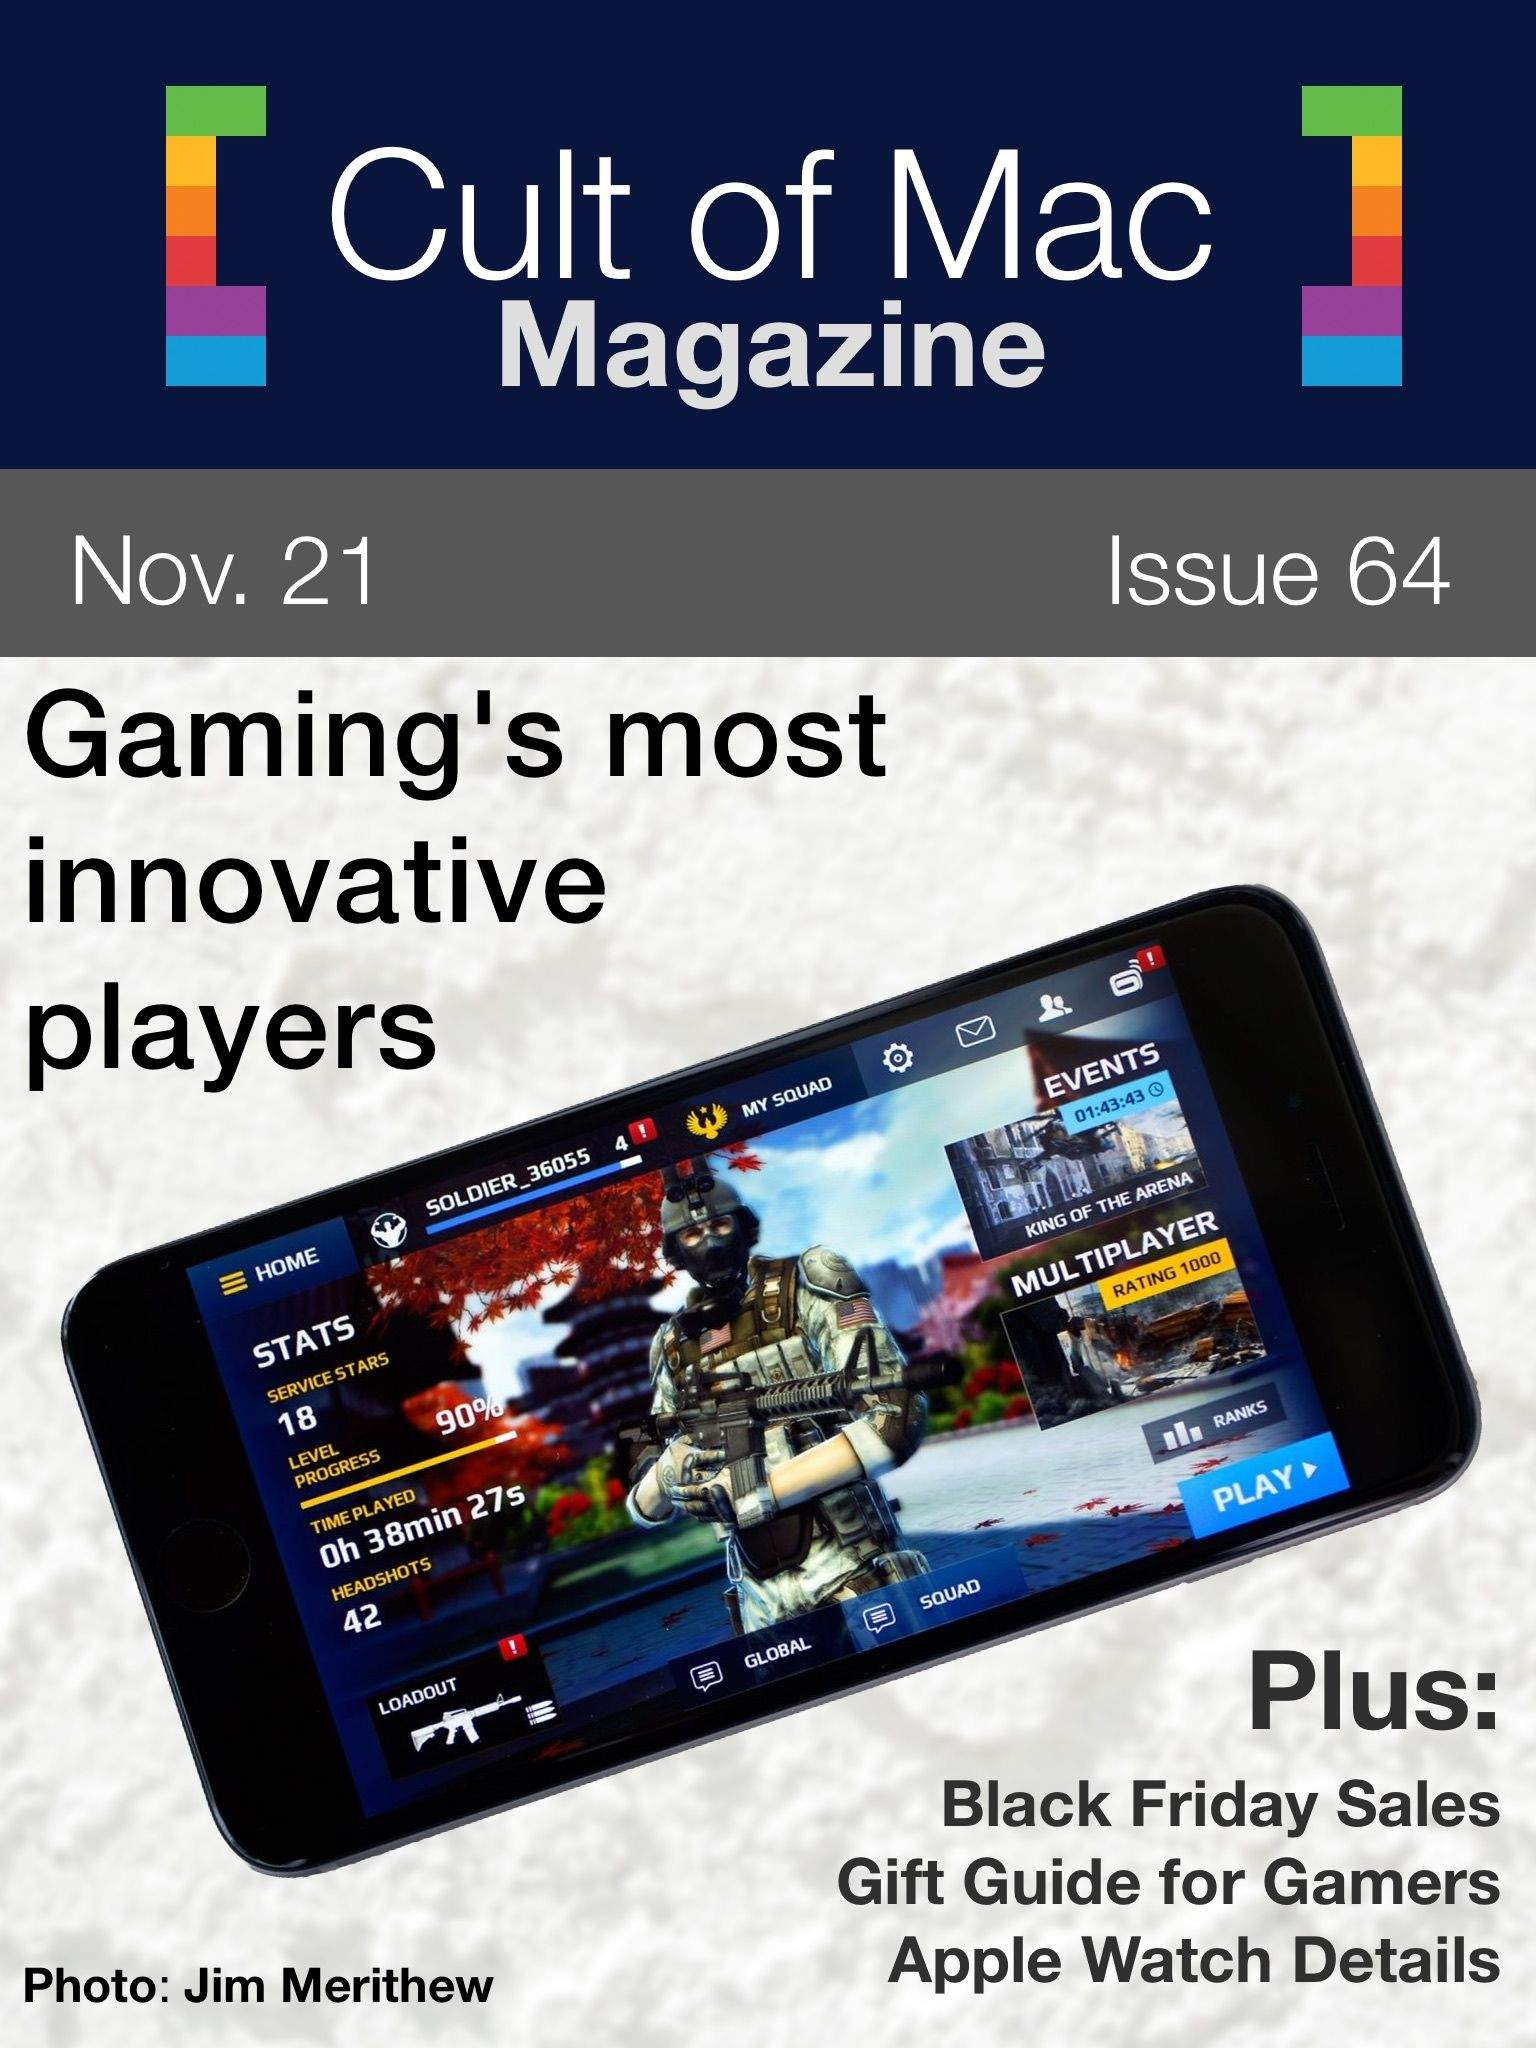 Gaming, Apple Watch, Black Friday. what more do you need? Cover Design: Rob LeFebvre/Cult of Mac